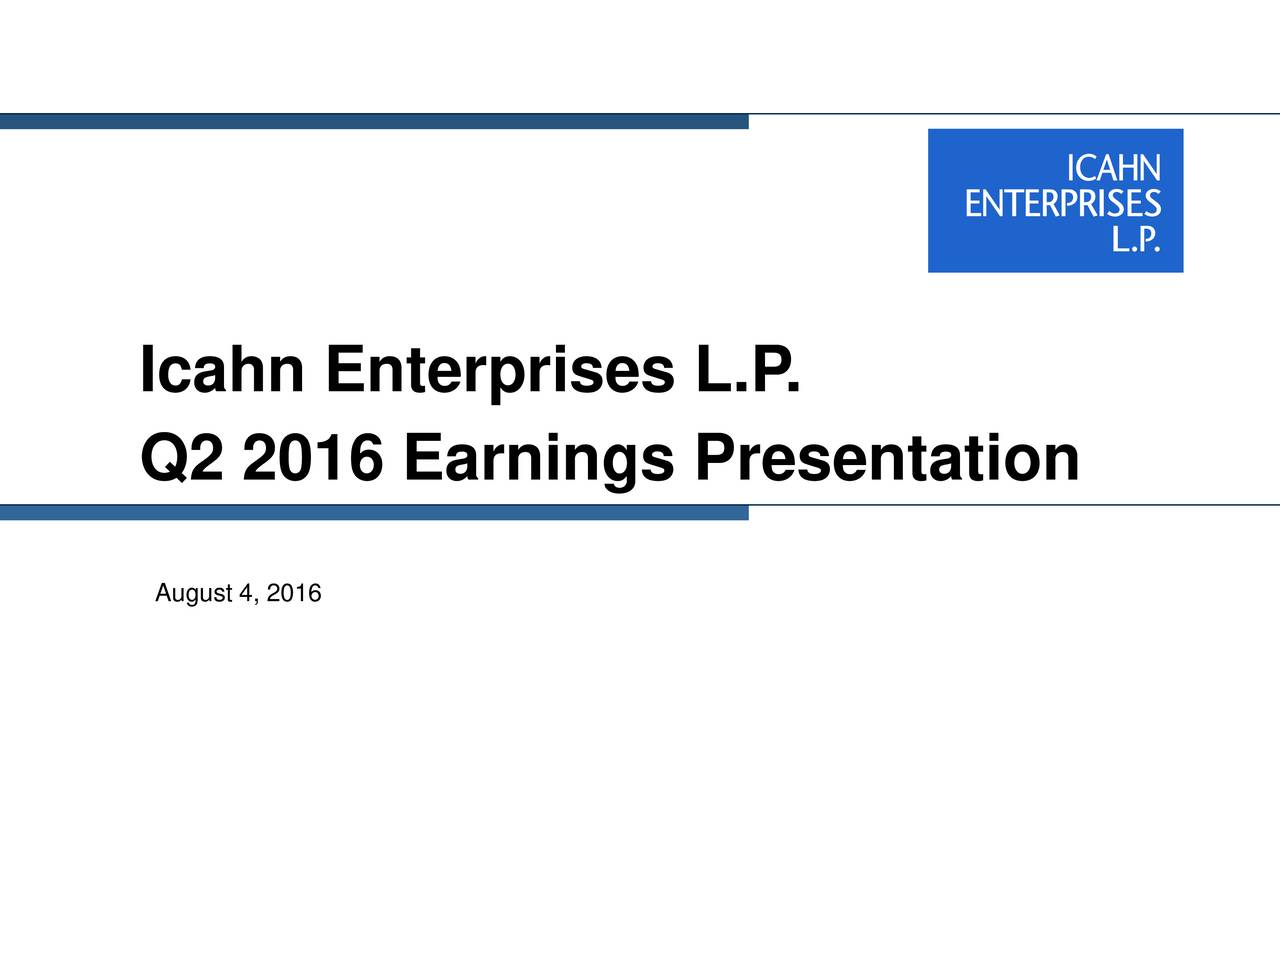 Q2 2016 Earnings Presentation August 4, 2016